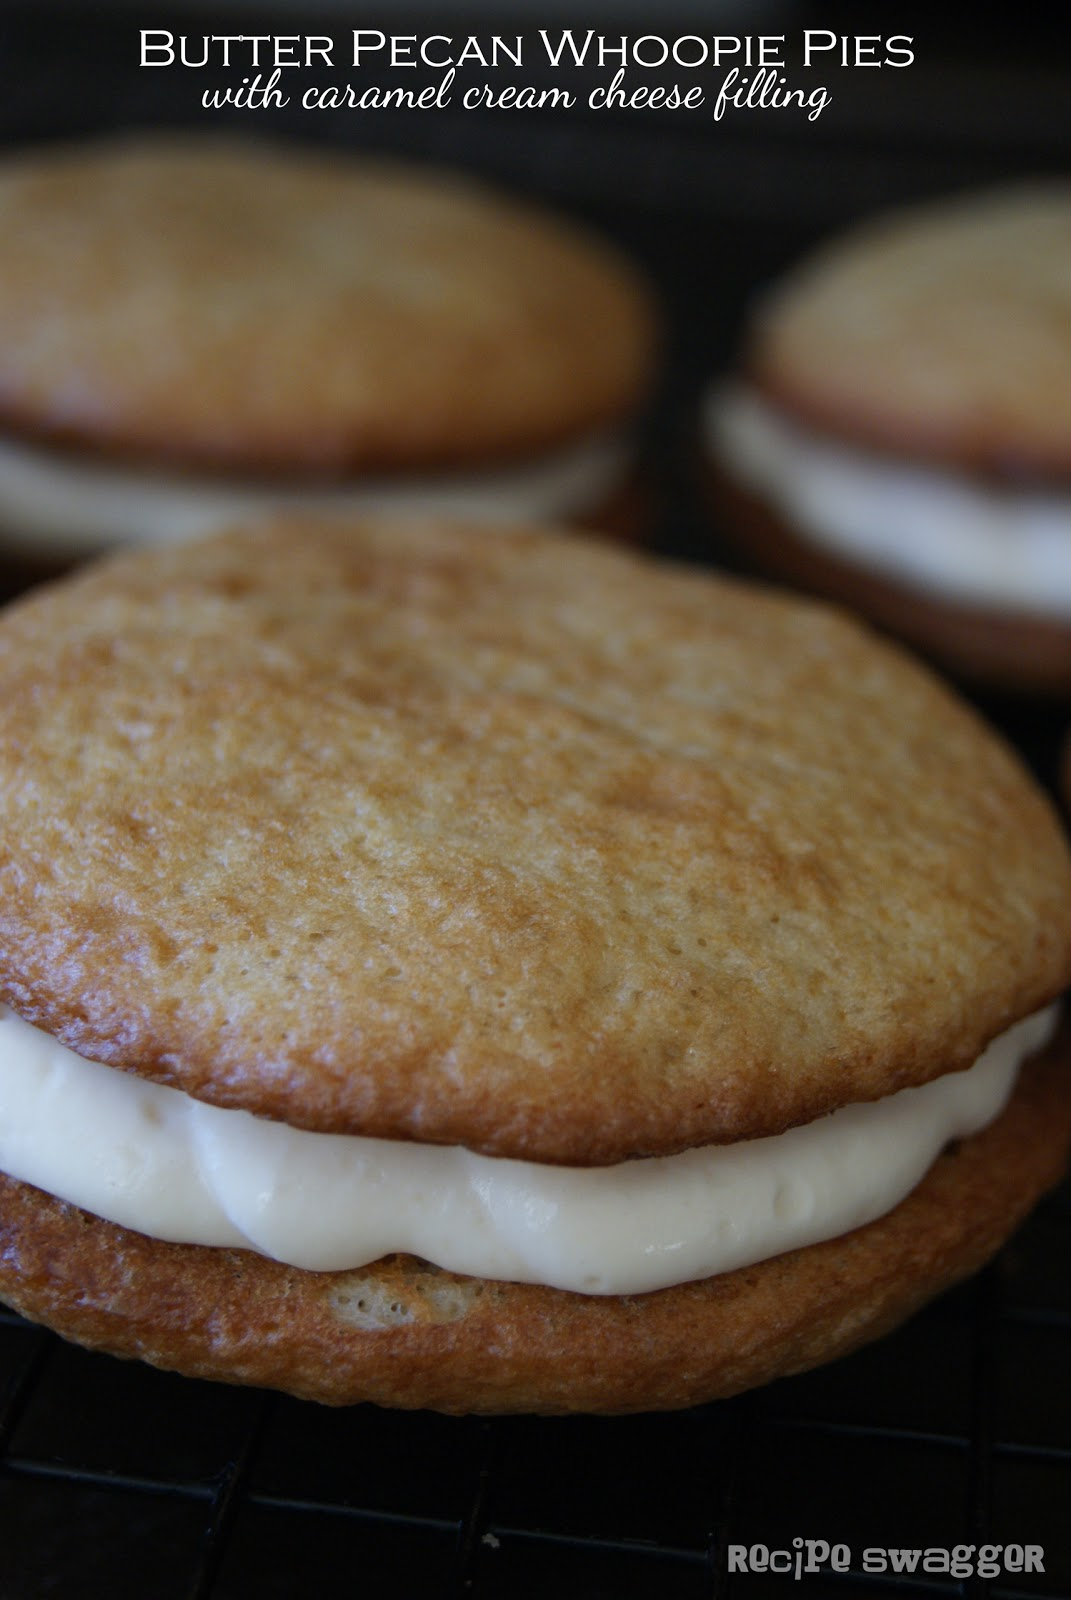 Butter Pecan Whoopie Pies with Caramel Cream Cheese Filling